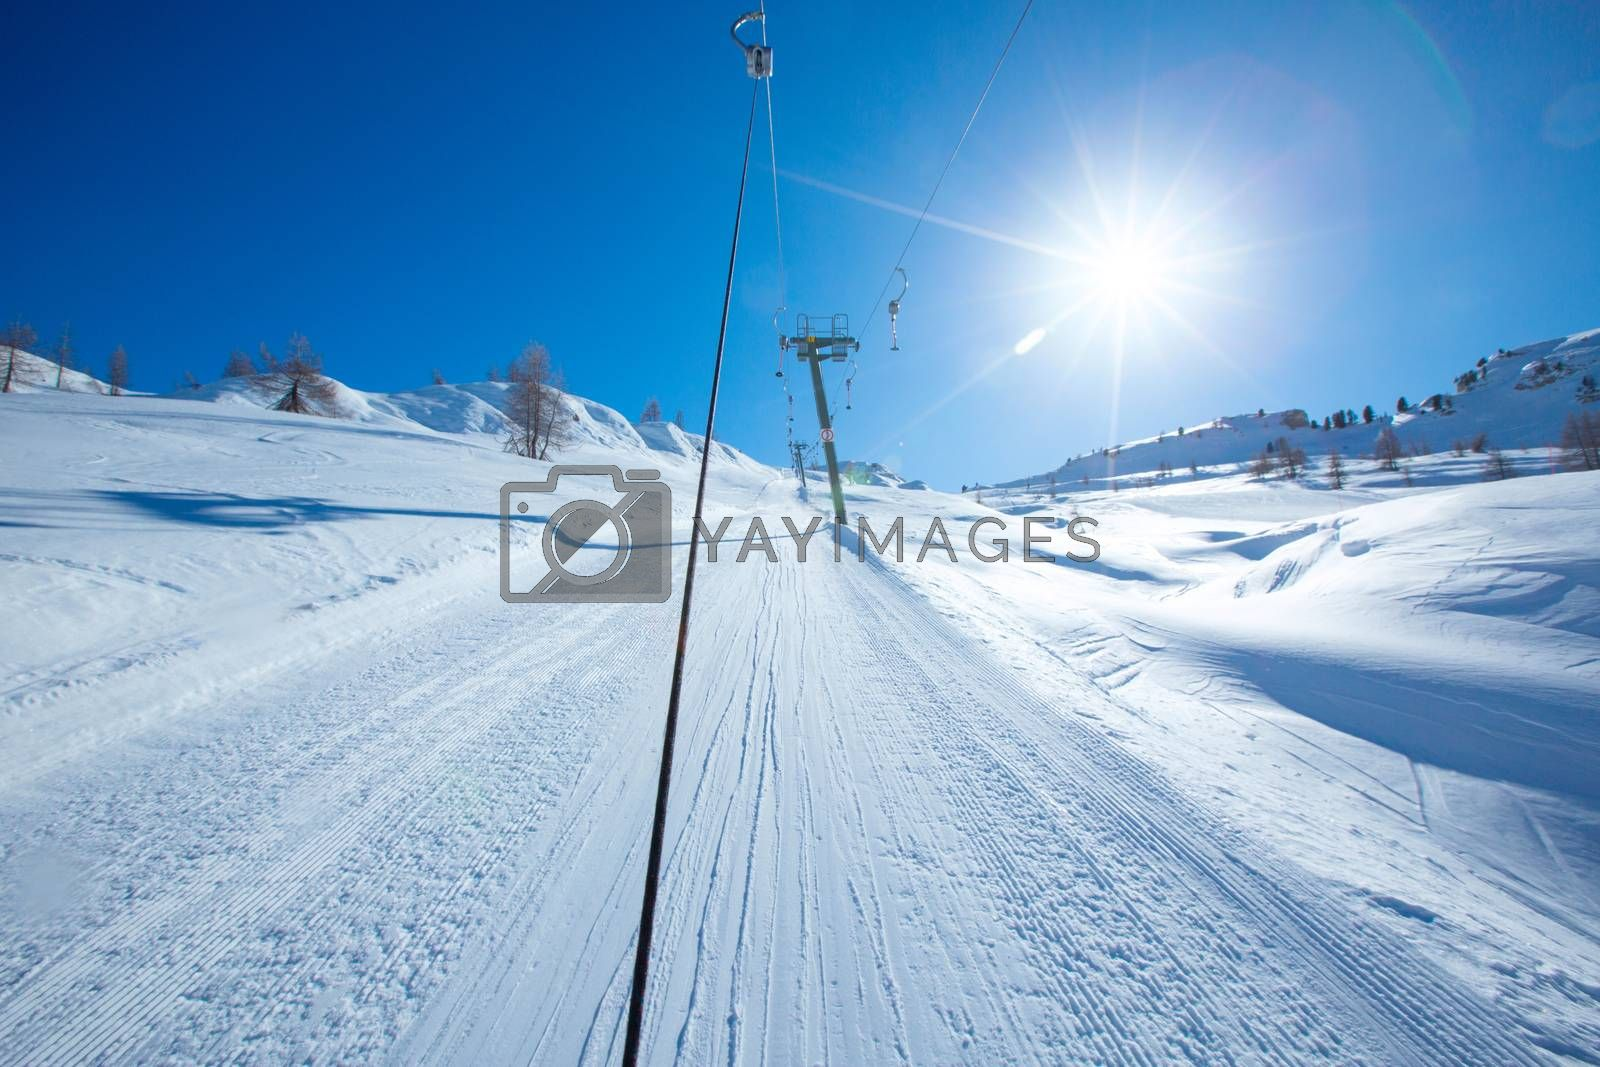 T bar ski lift for pulling skiers up the slope. Perfect winter landscape in European Alps Italy Cortina d'Ampezzo Col Gallina